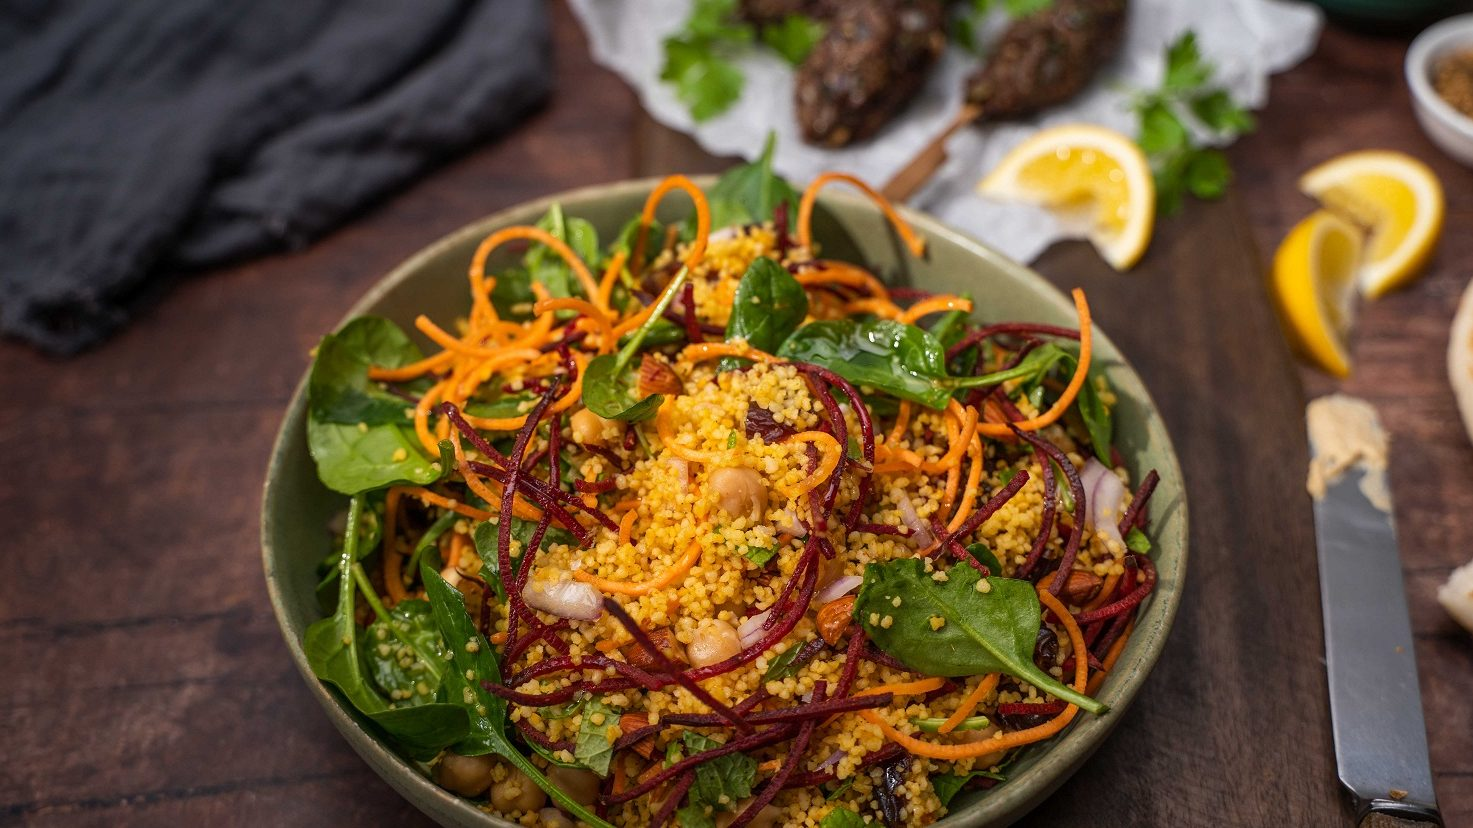 A bowl of yellow grains, red and orange strips and green leaf salad, meat kebabs and lemon wedges in the back.